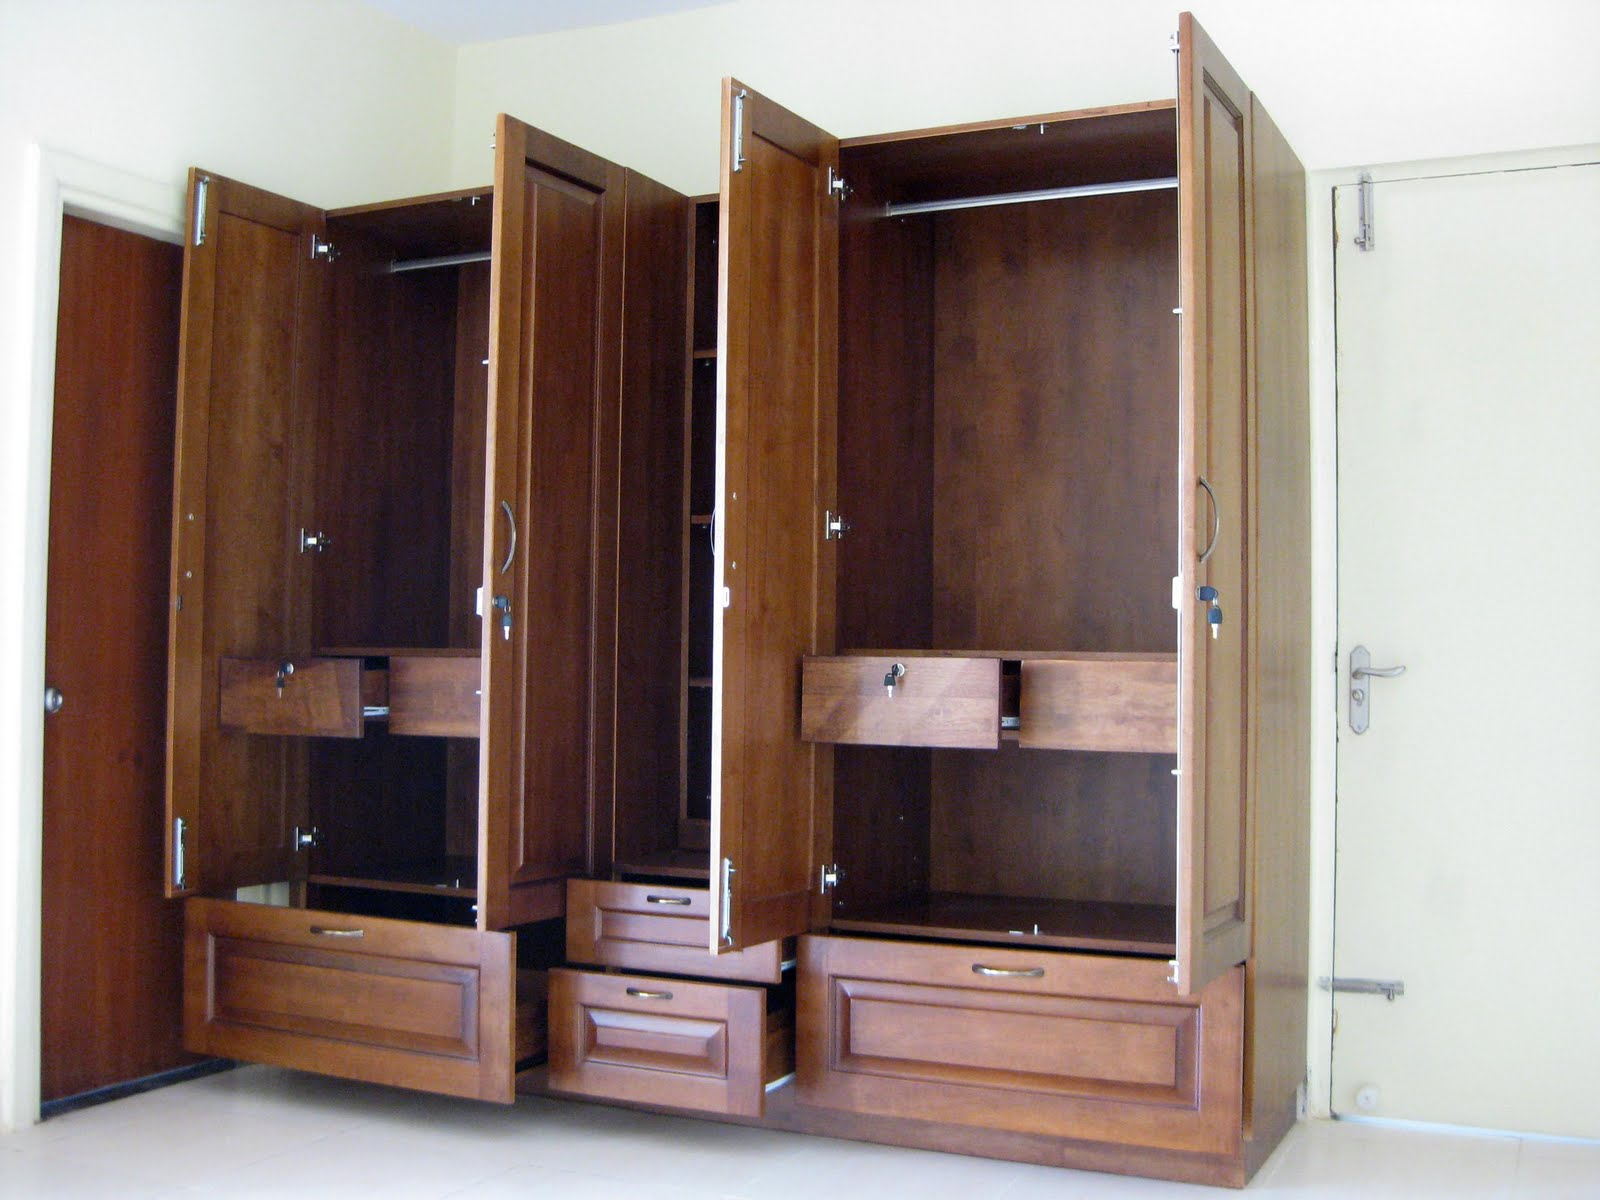 Magnificent Large Wardrobe Closet 1600 x 1200 · 165 kB · jpeg